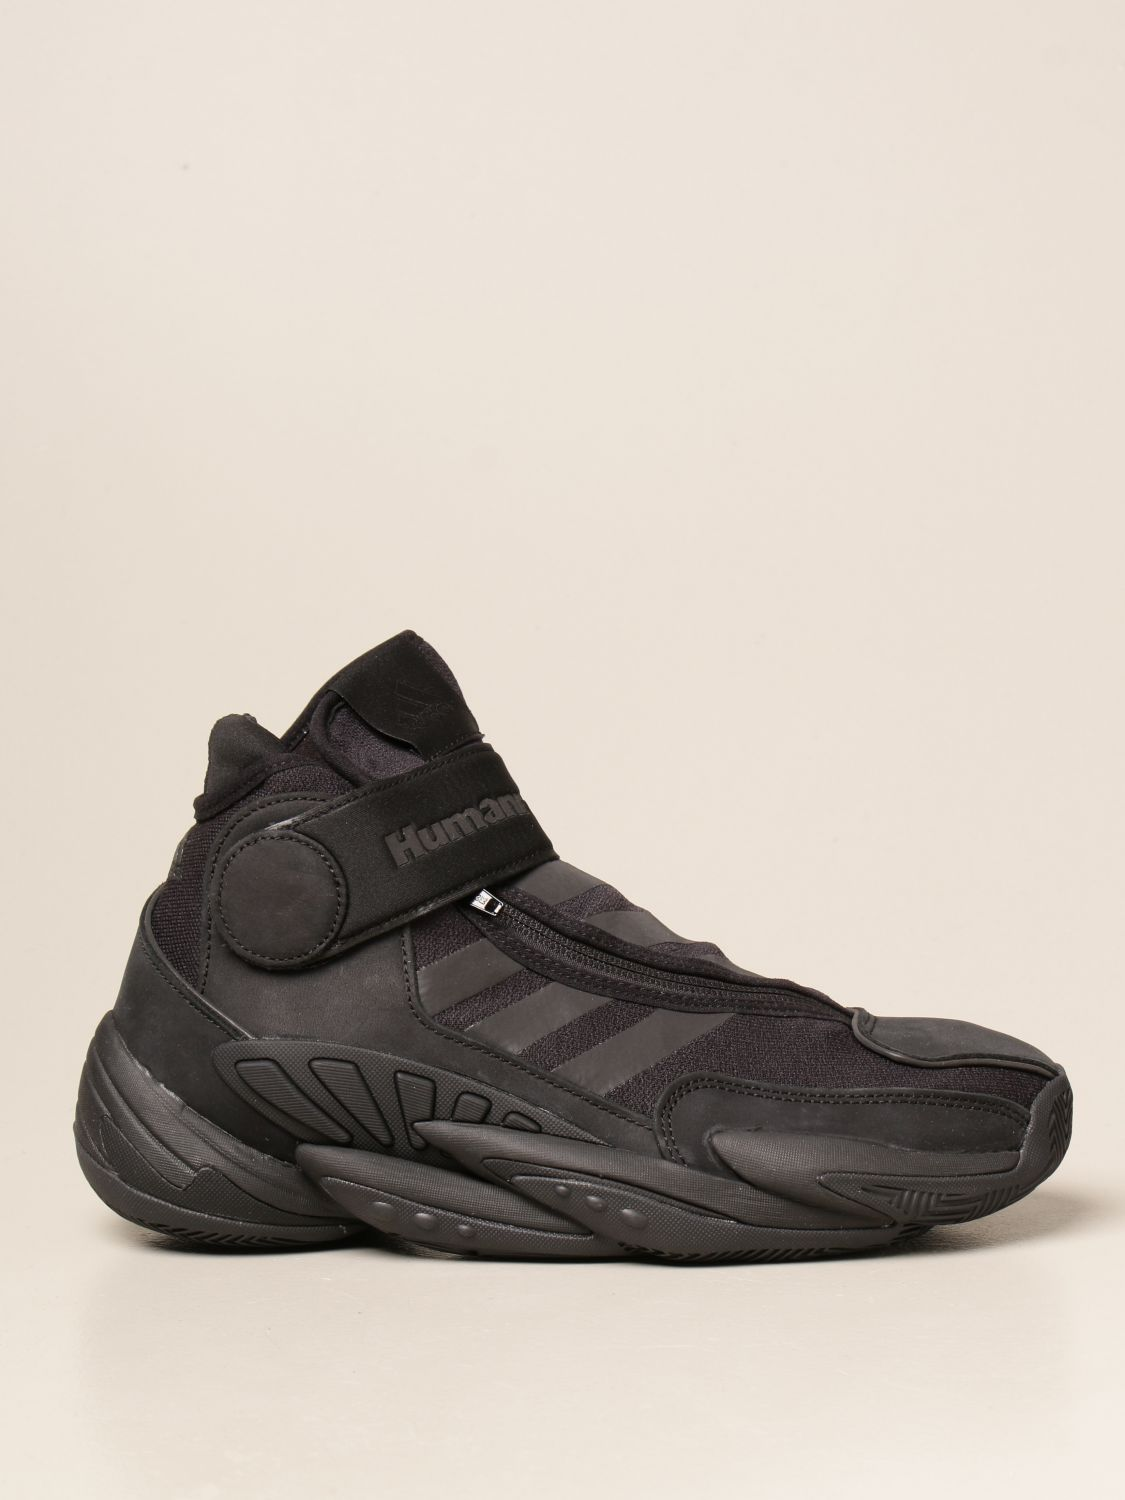 Trainers Adidas Originals By Pharrell Williams: Shoes men Adidas Originals By Pharrell Williams black 1